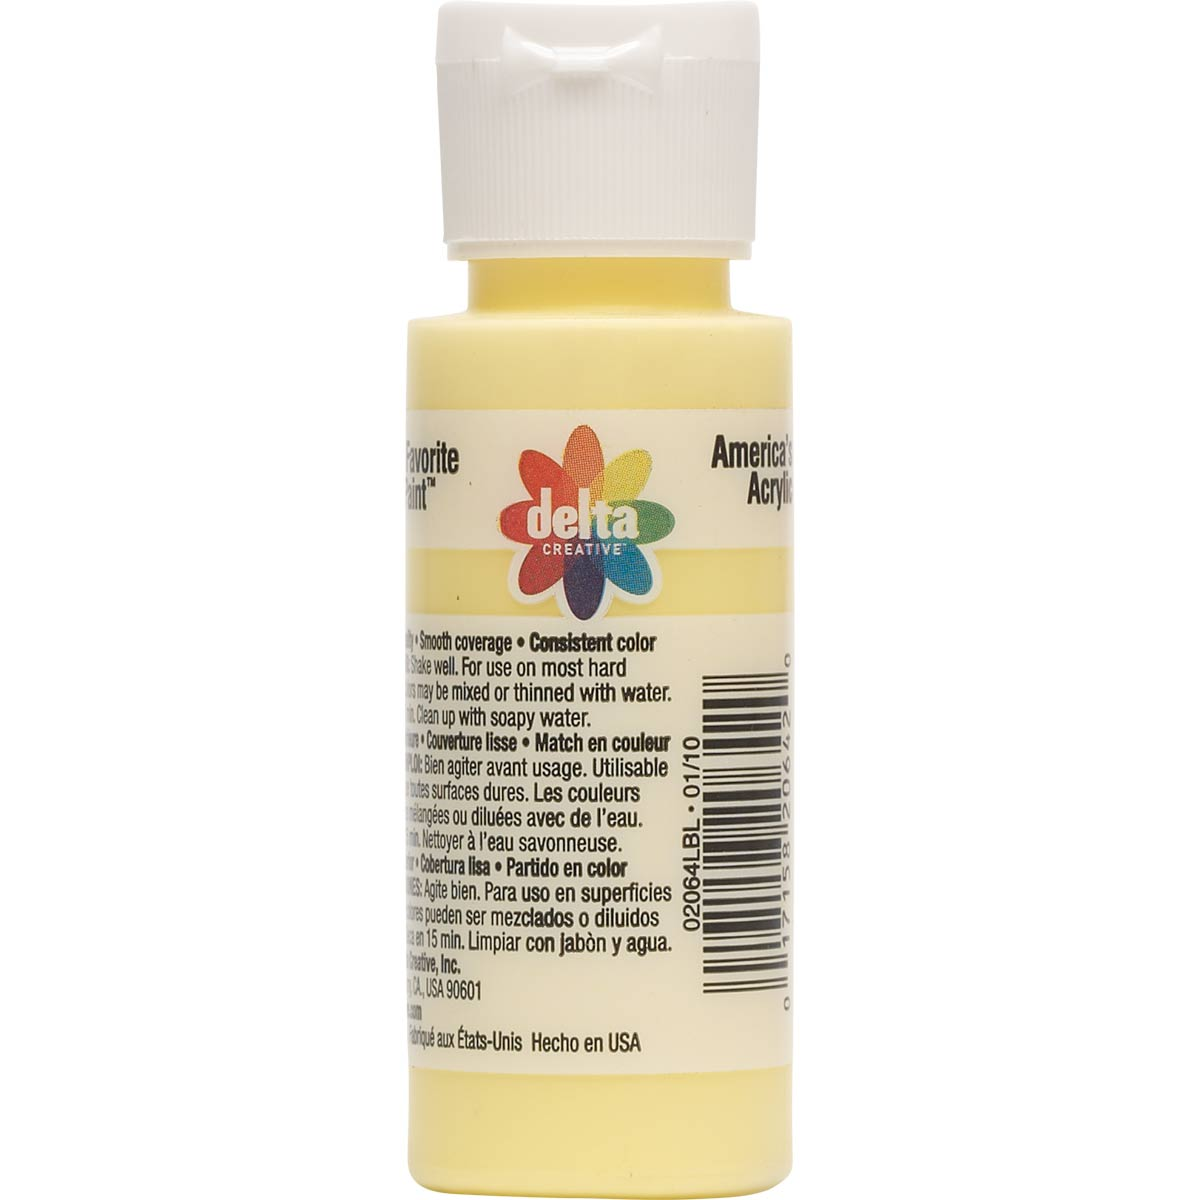 Delta Ceramcoat ® Acrylic Paint - Sunbright Yellow, 2 oz. - 020640202W